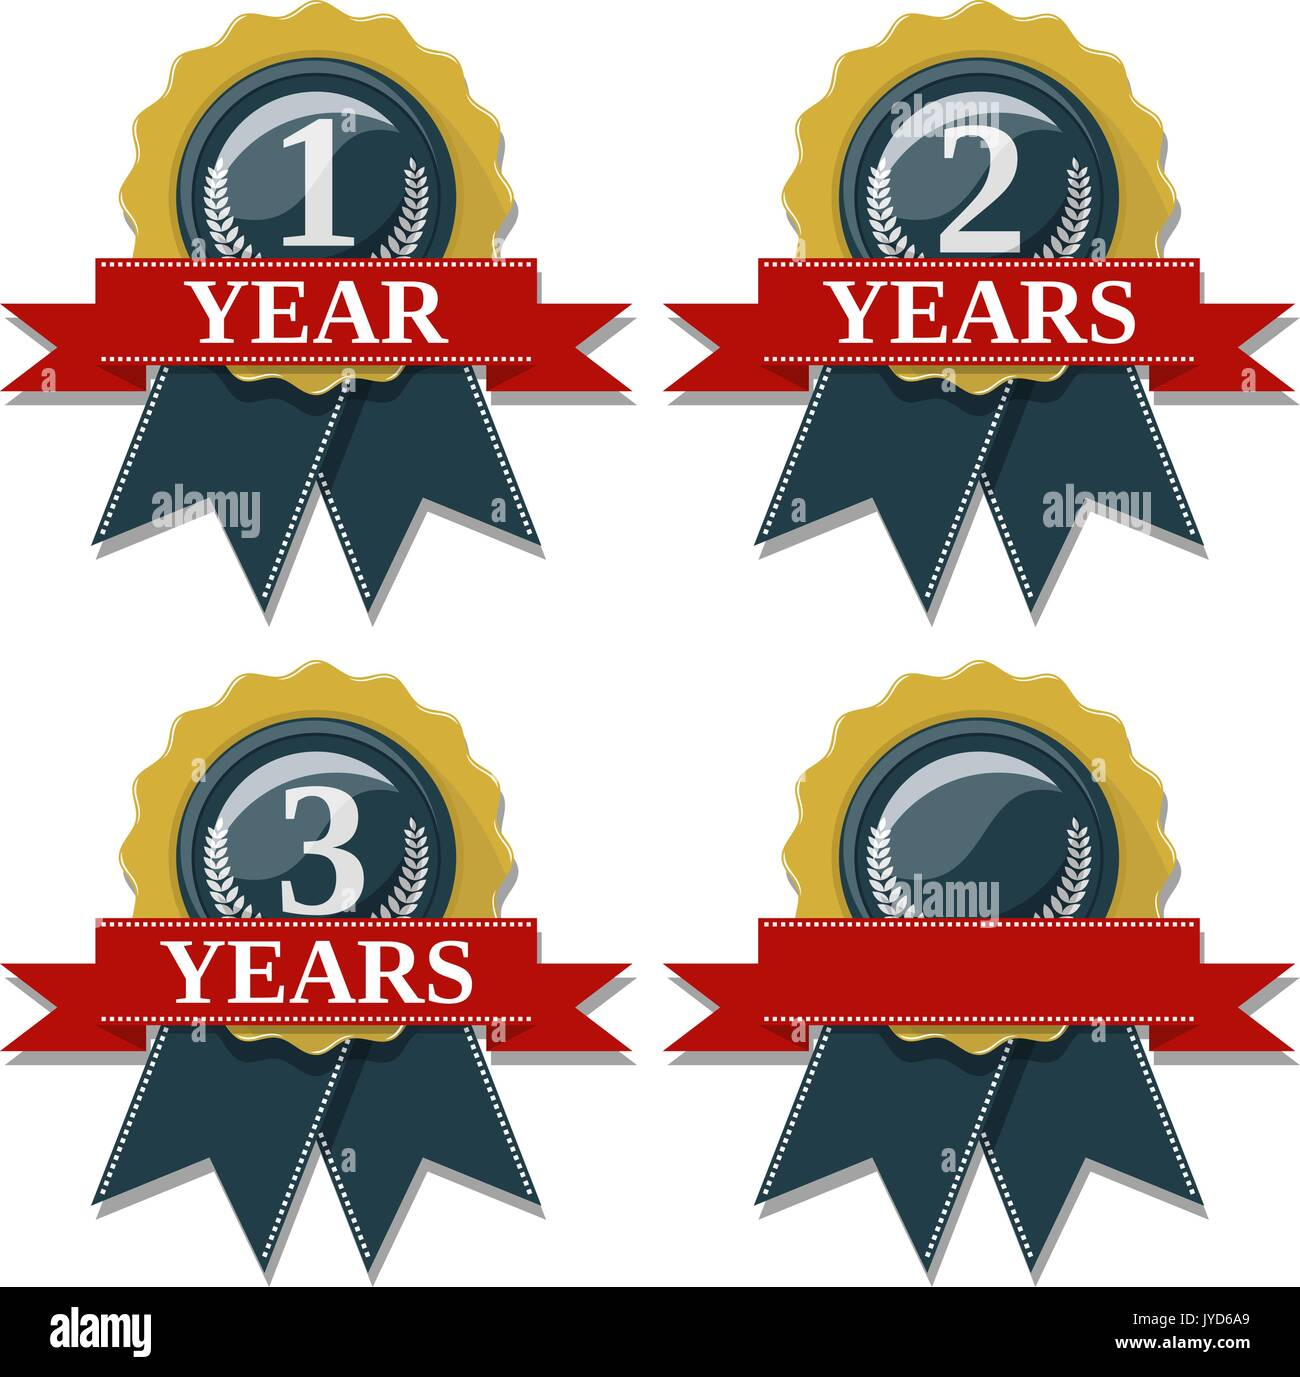 seal and ribbon collection commemorating 1 2 3 years,  in vector format very easy to edit, individual objects, solid colors, no gradients - Stock Image